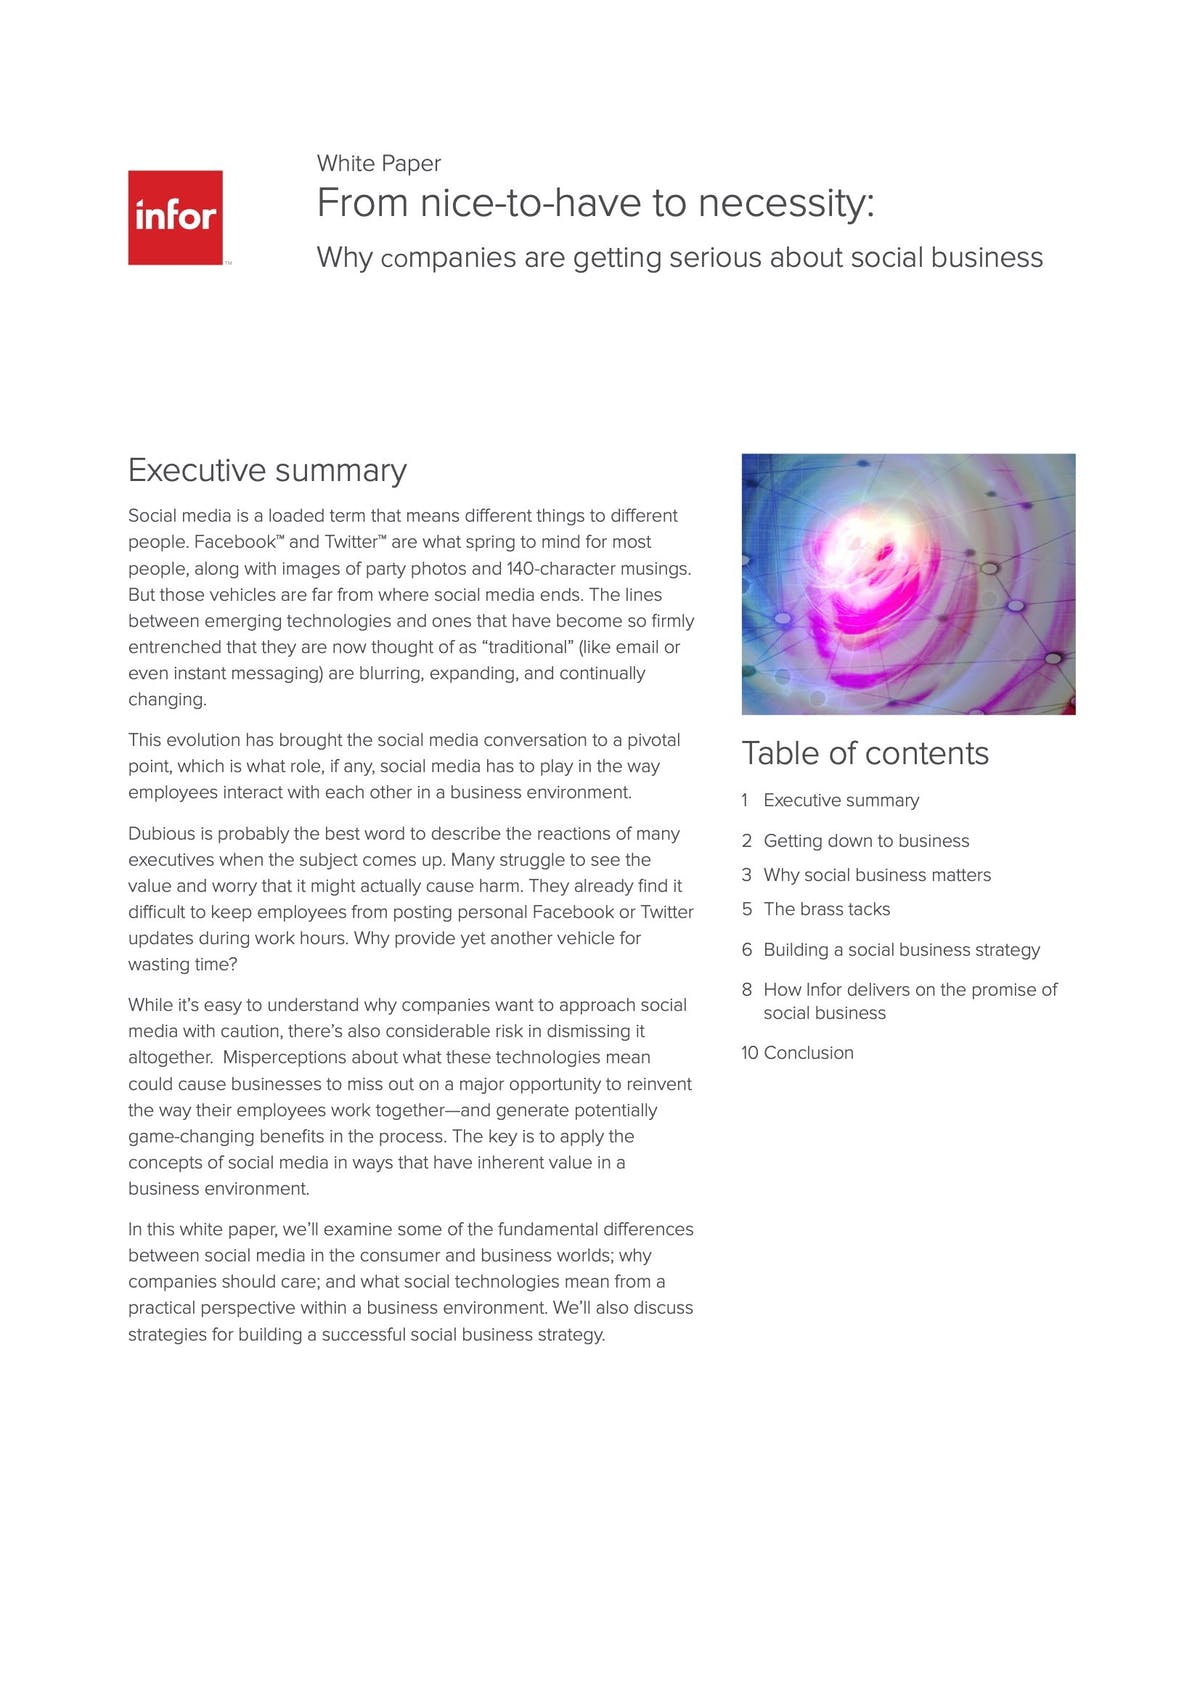 Infor CloudSuite Industrial (Syteline) White Paper - From Nice-to-Have to Necessity